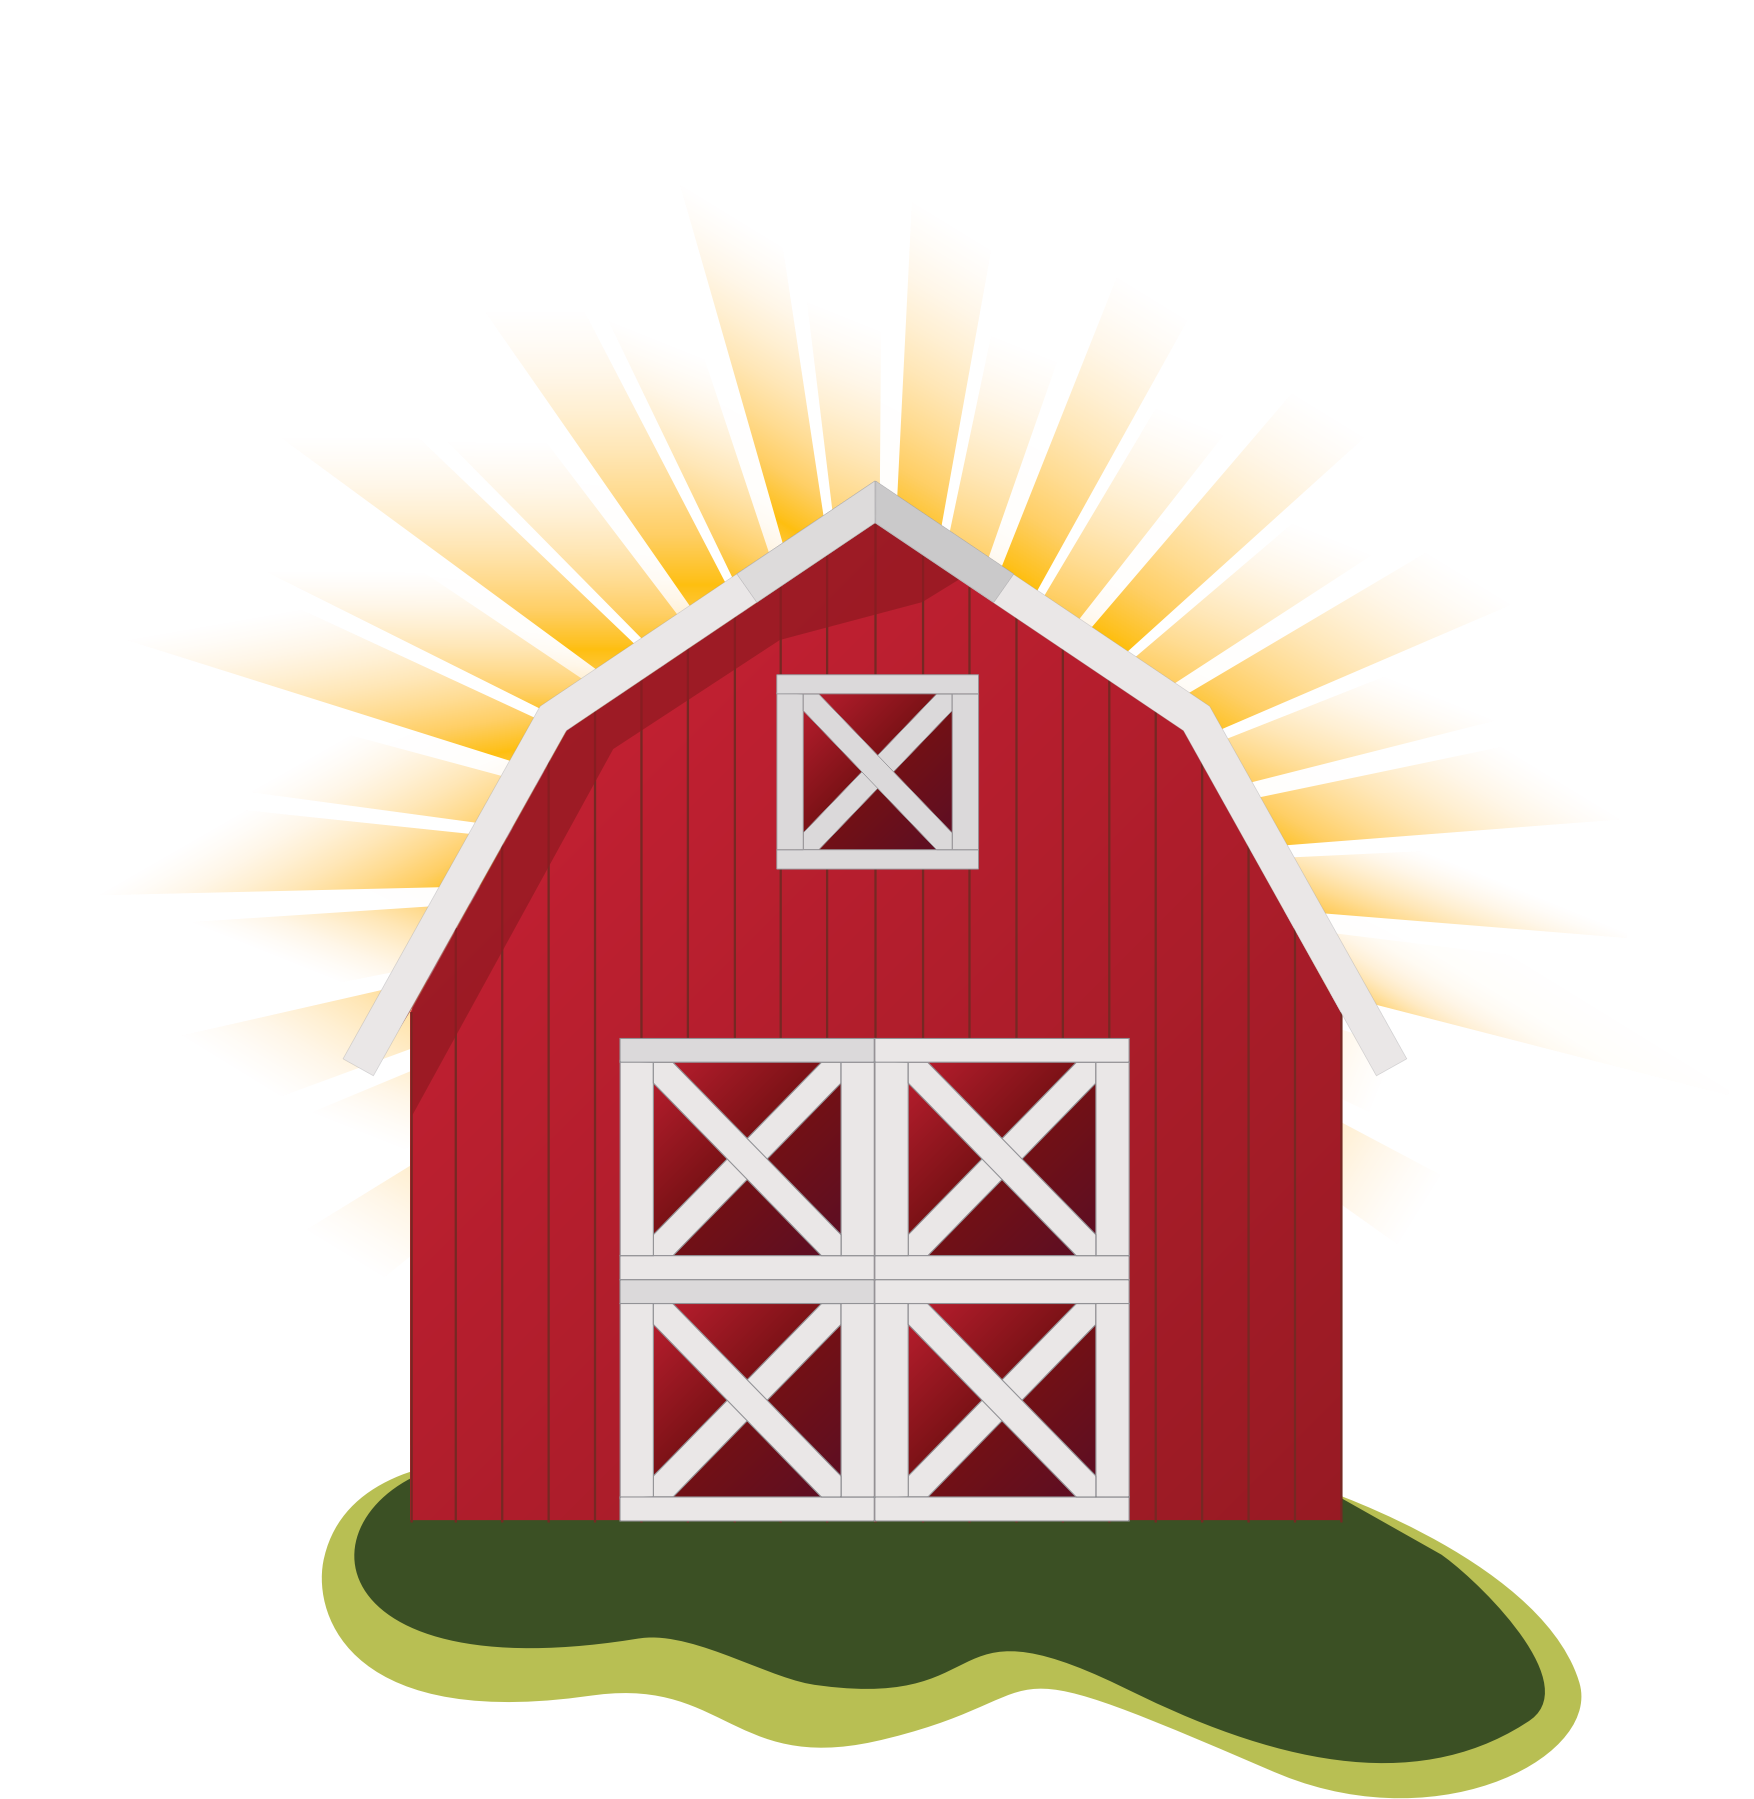 picture free Red big image png. Barn clipart dairy barn.